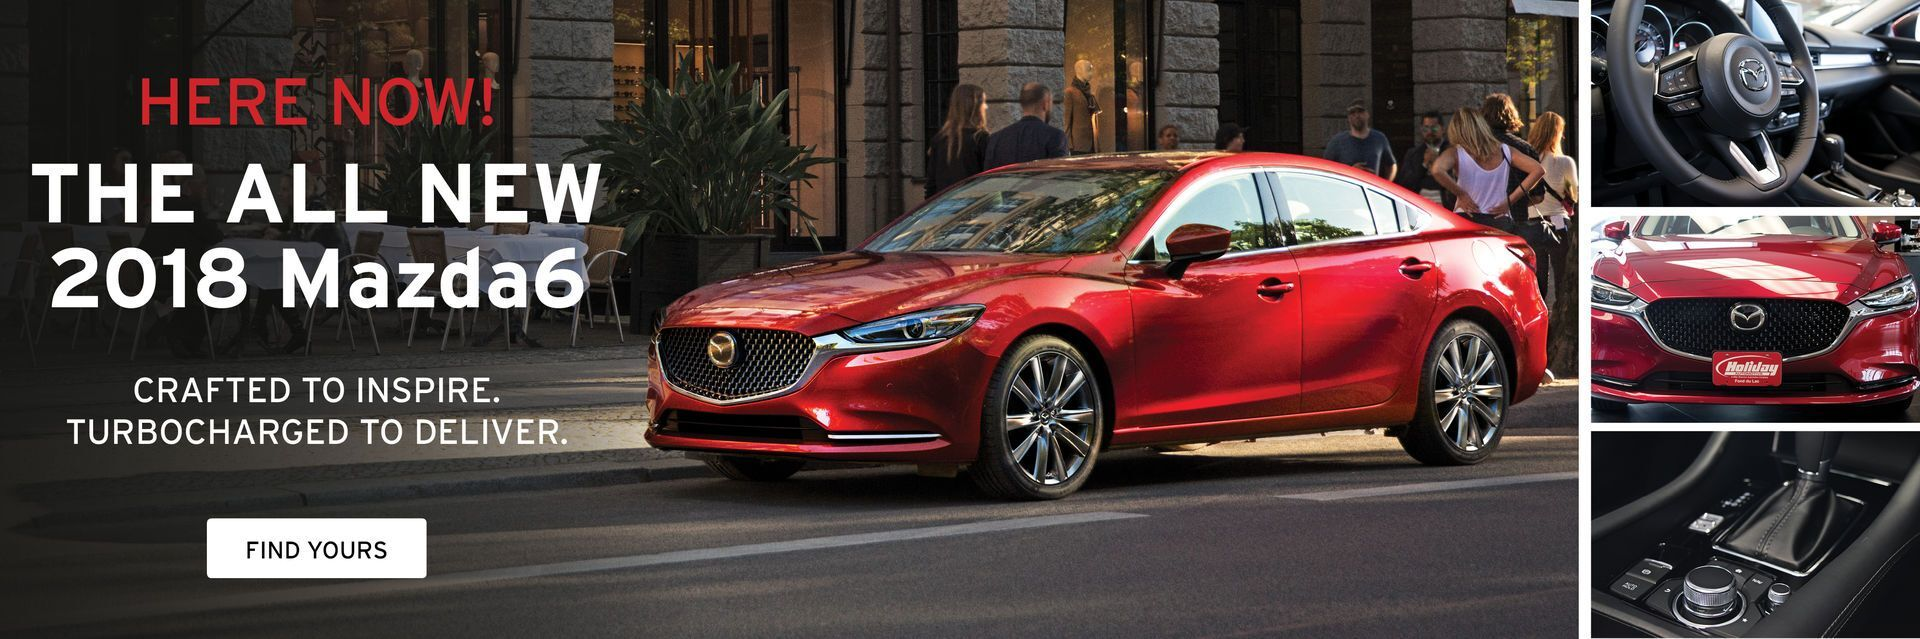 The 2018 Mazda6 is here at Holiday Mazda in Fond du Lac, WI